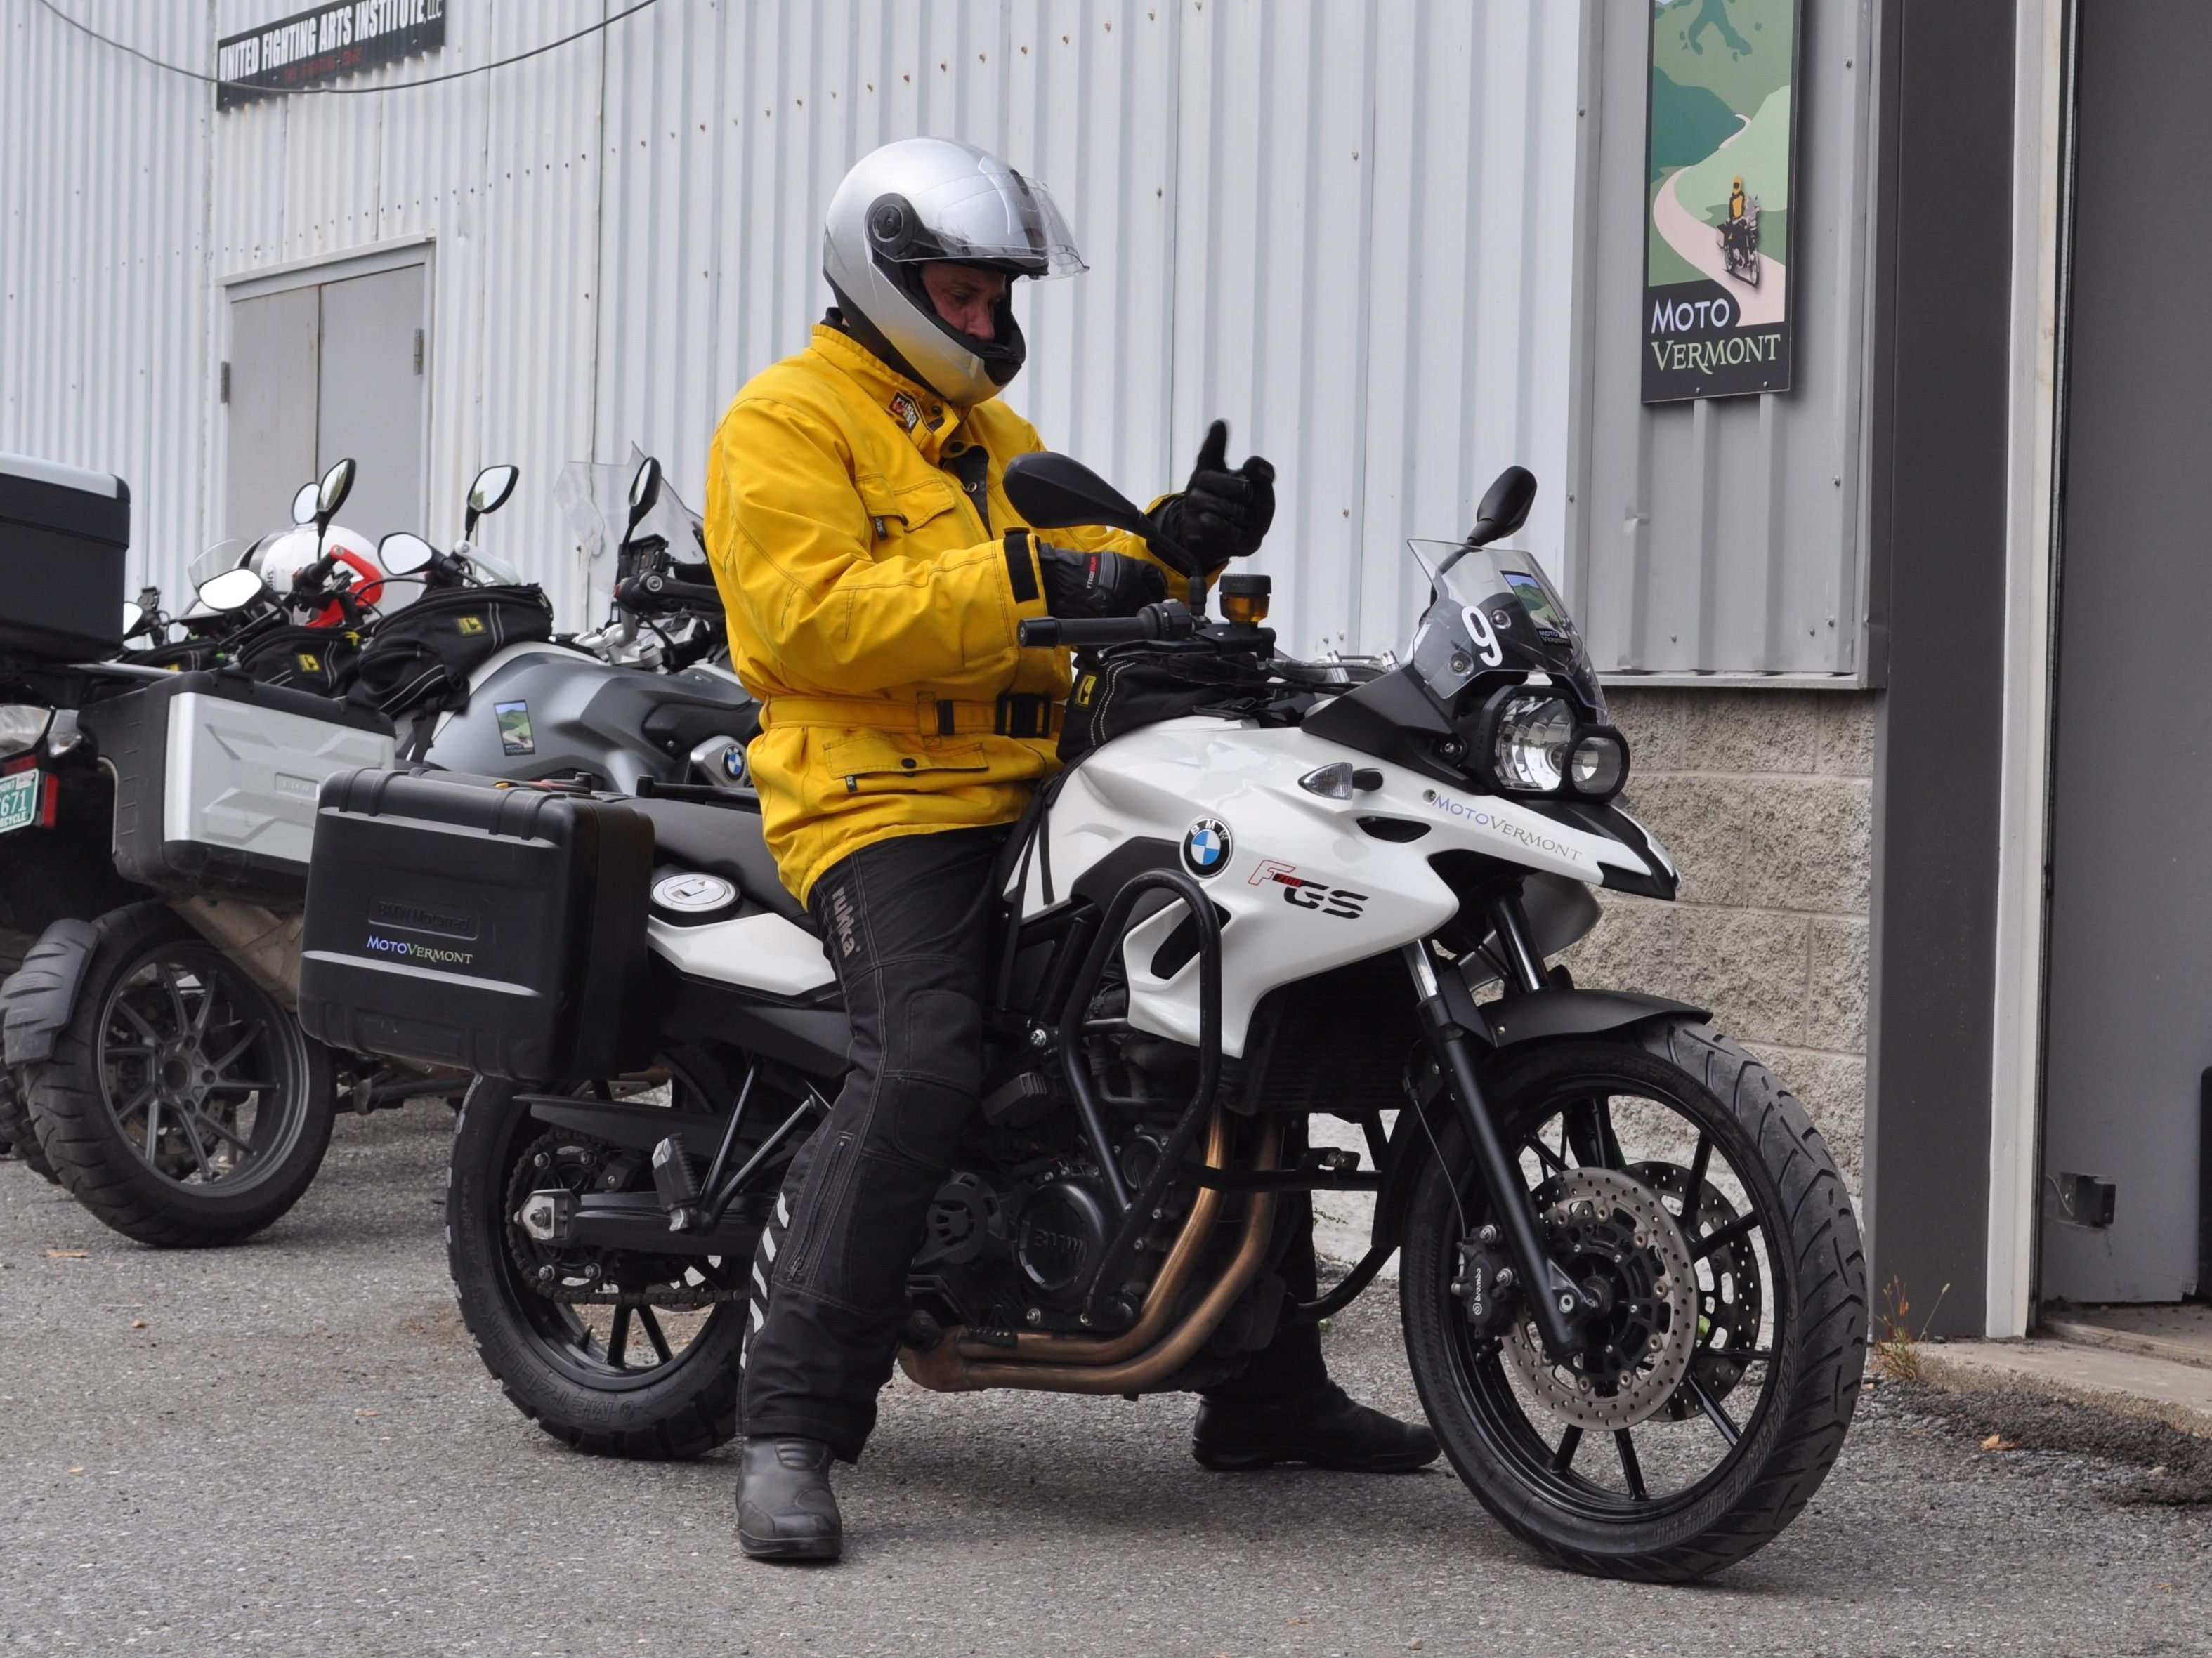 Motovermont bmw f700gs http www motovermont com motorcycle